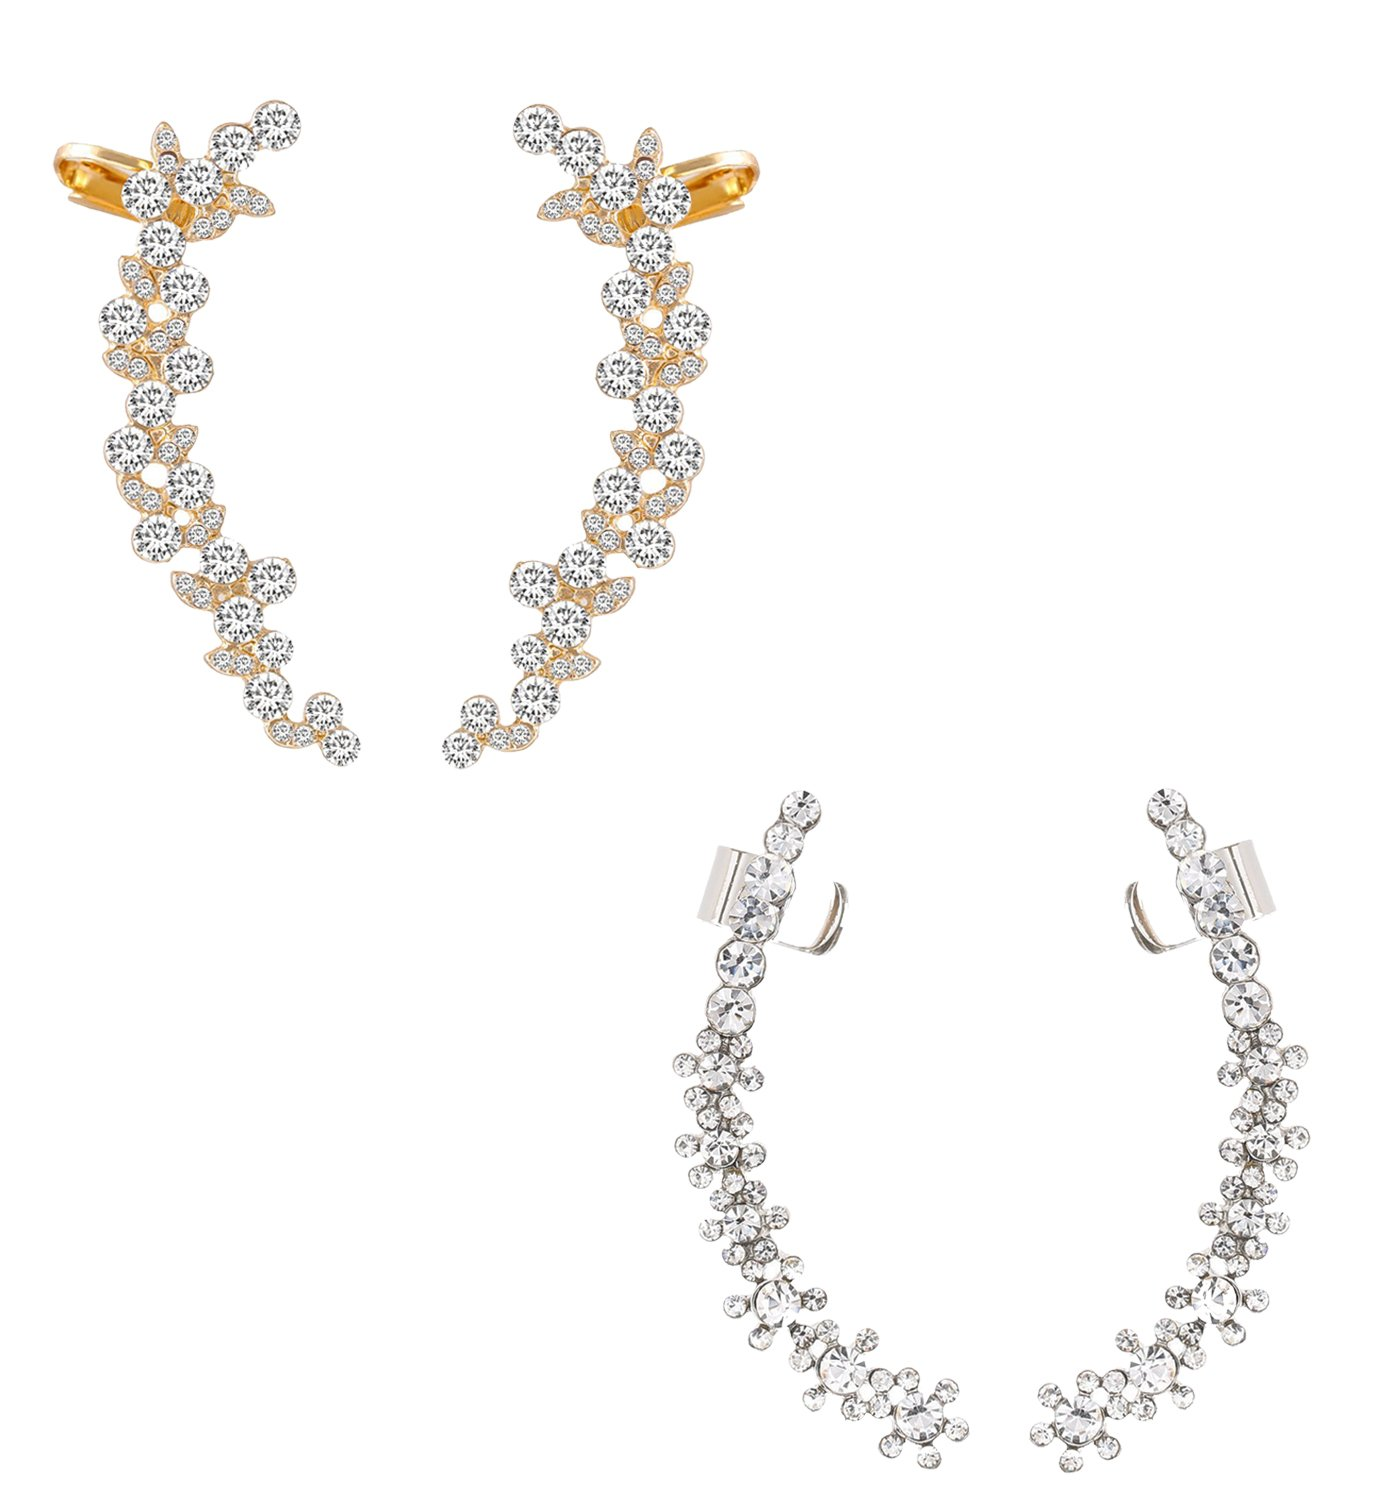 Boderier Ear Cuffs Crystal Flower Earrings Crystal Cluster Top Ear Clip (White and Wine)